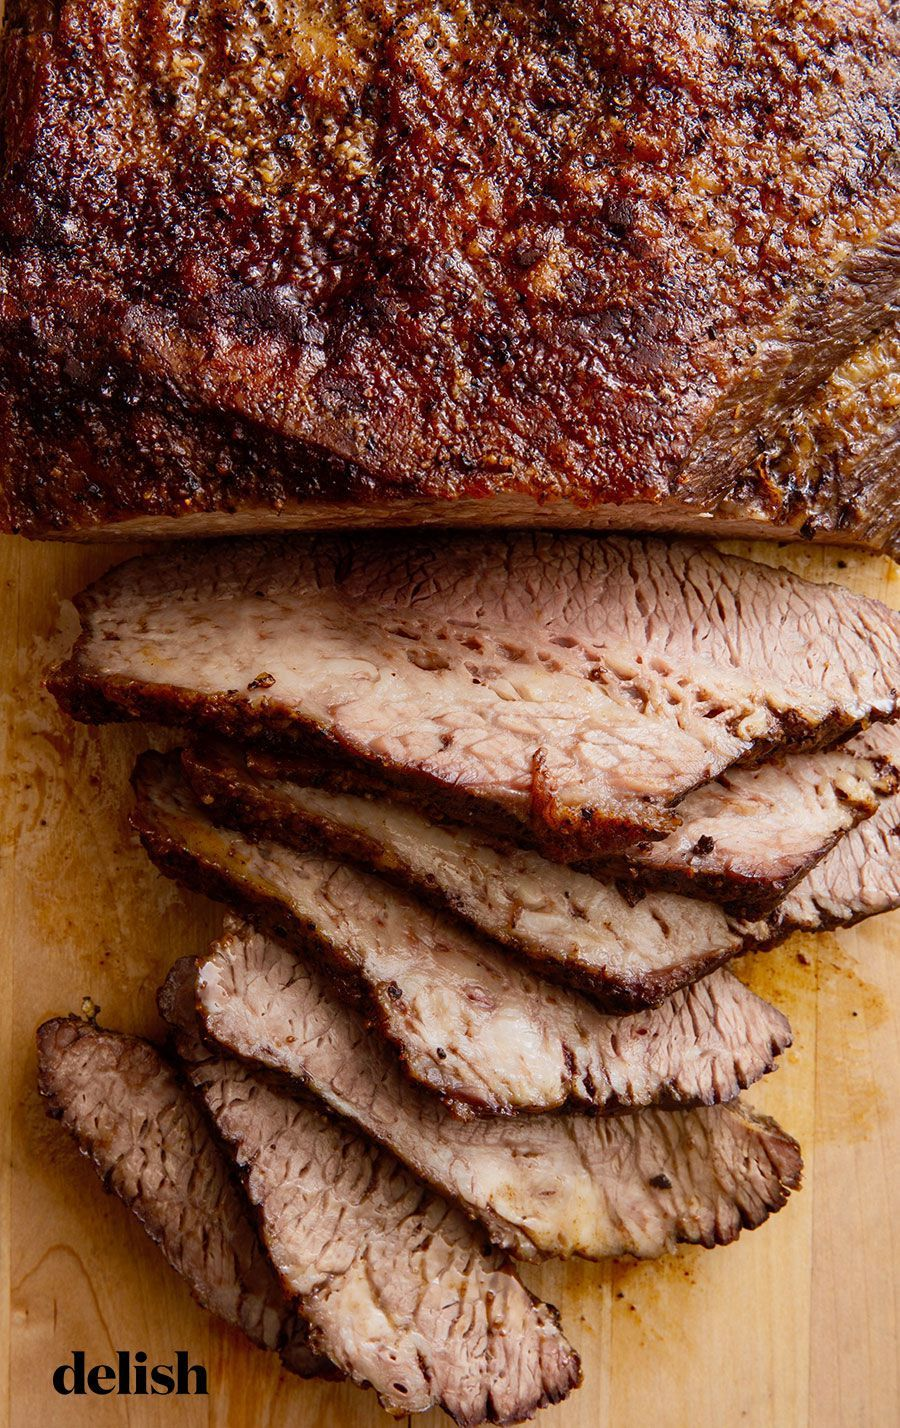 Best Beef Brisket Recipe Brisket Recipes Beef Brisket Recipes Brisket